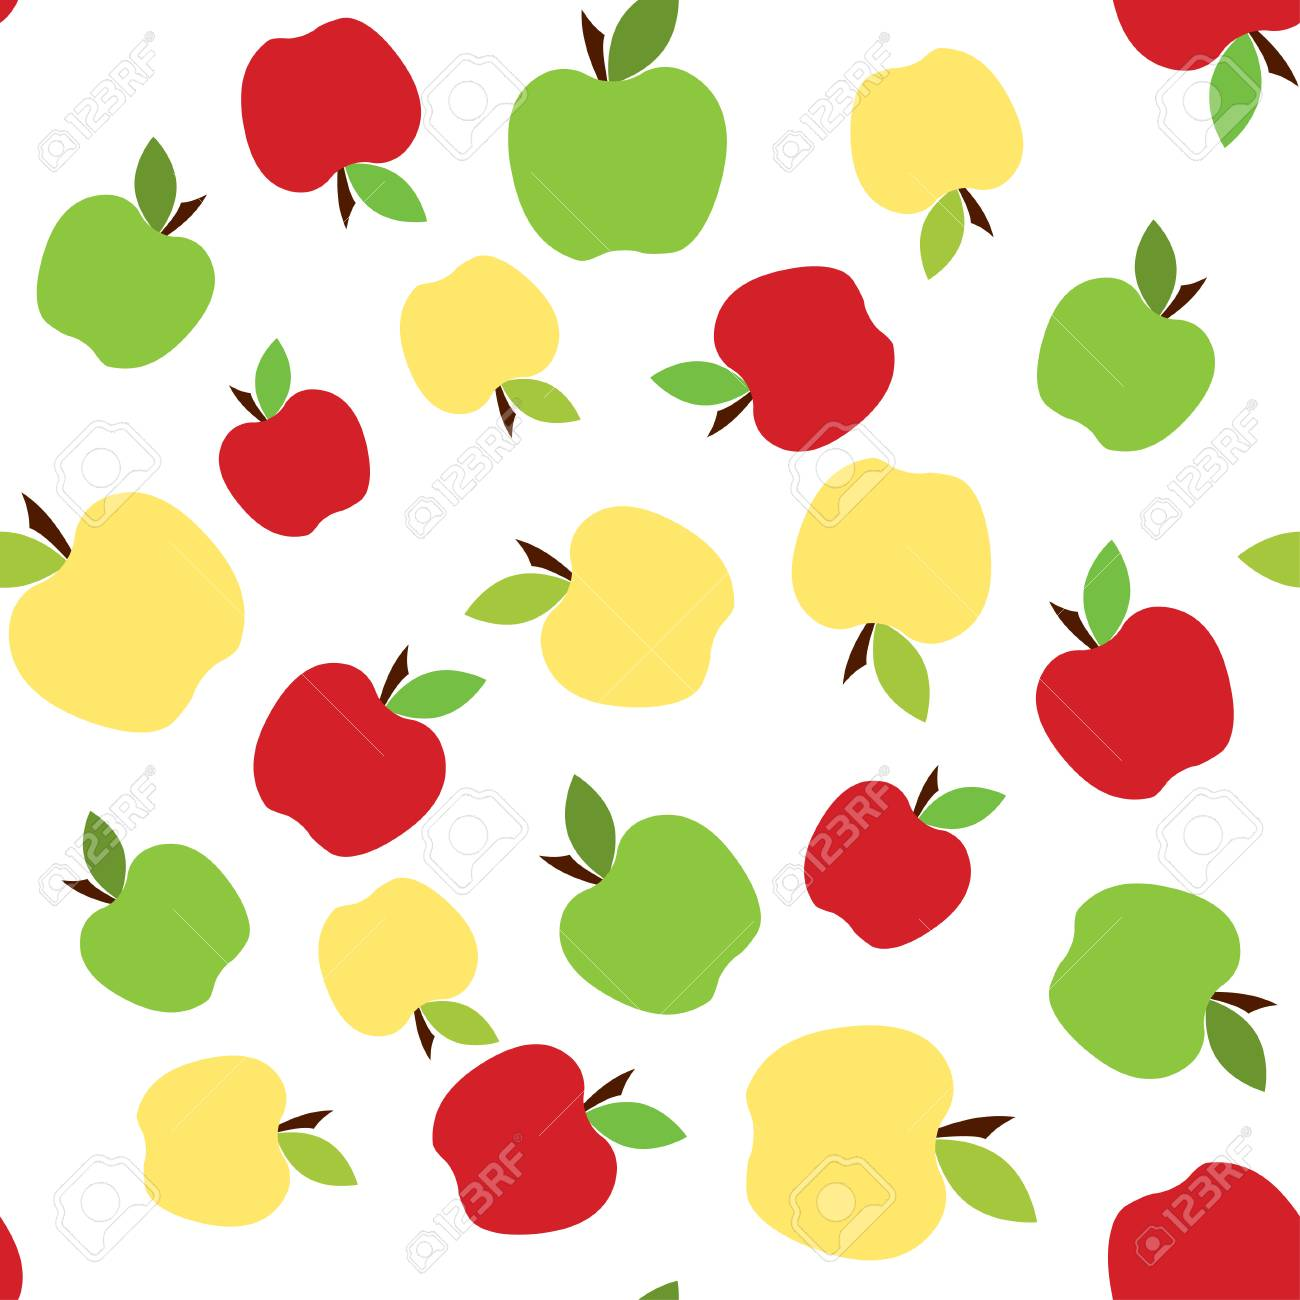 green and red apples seamless pattern, background with cute fruits